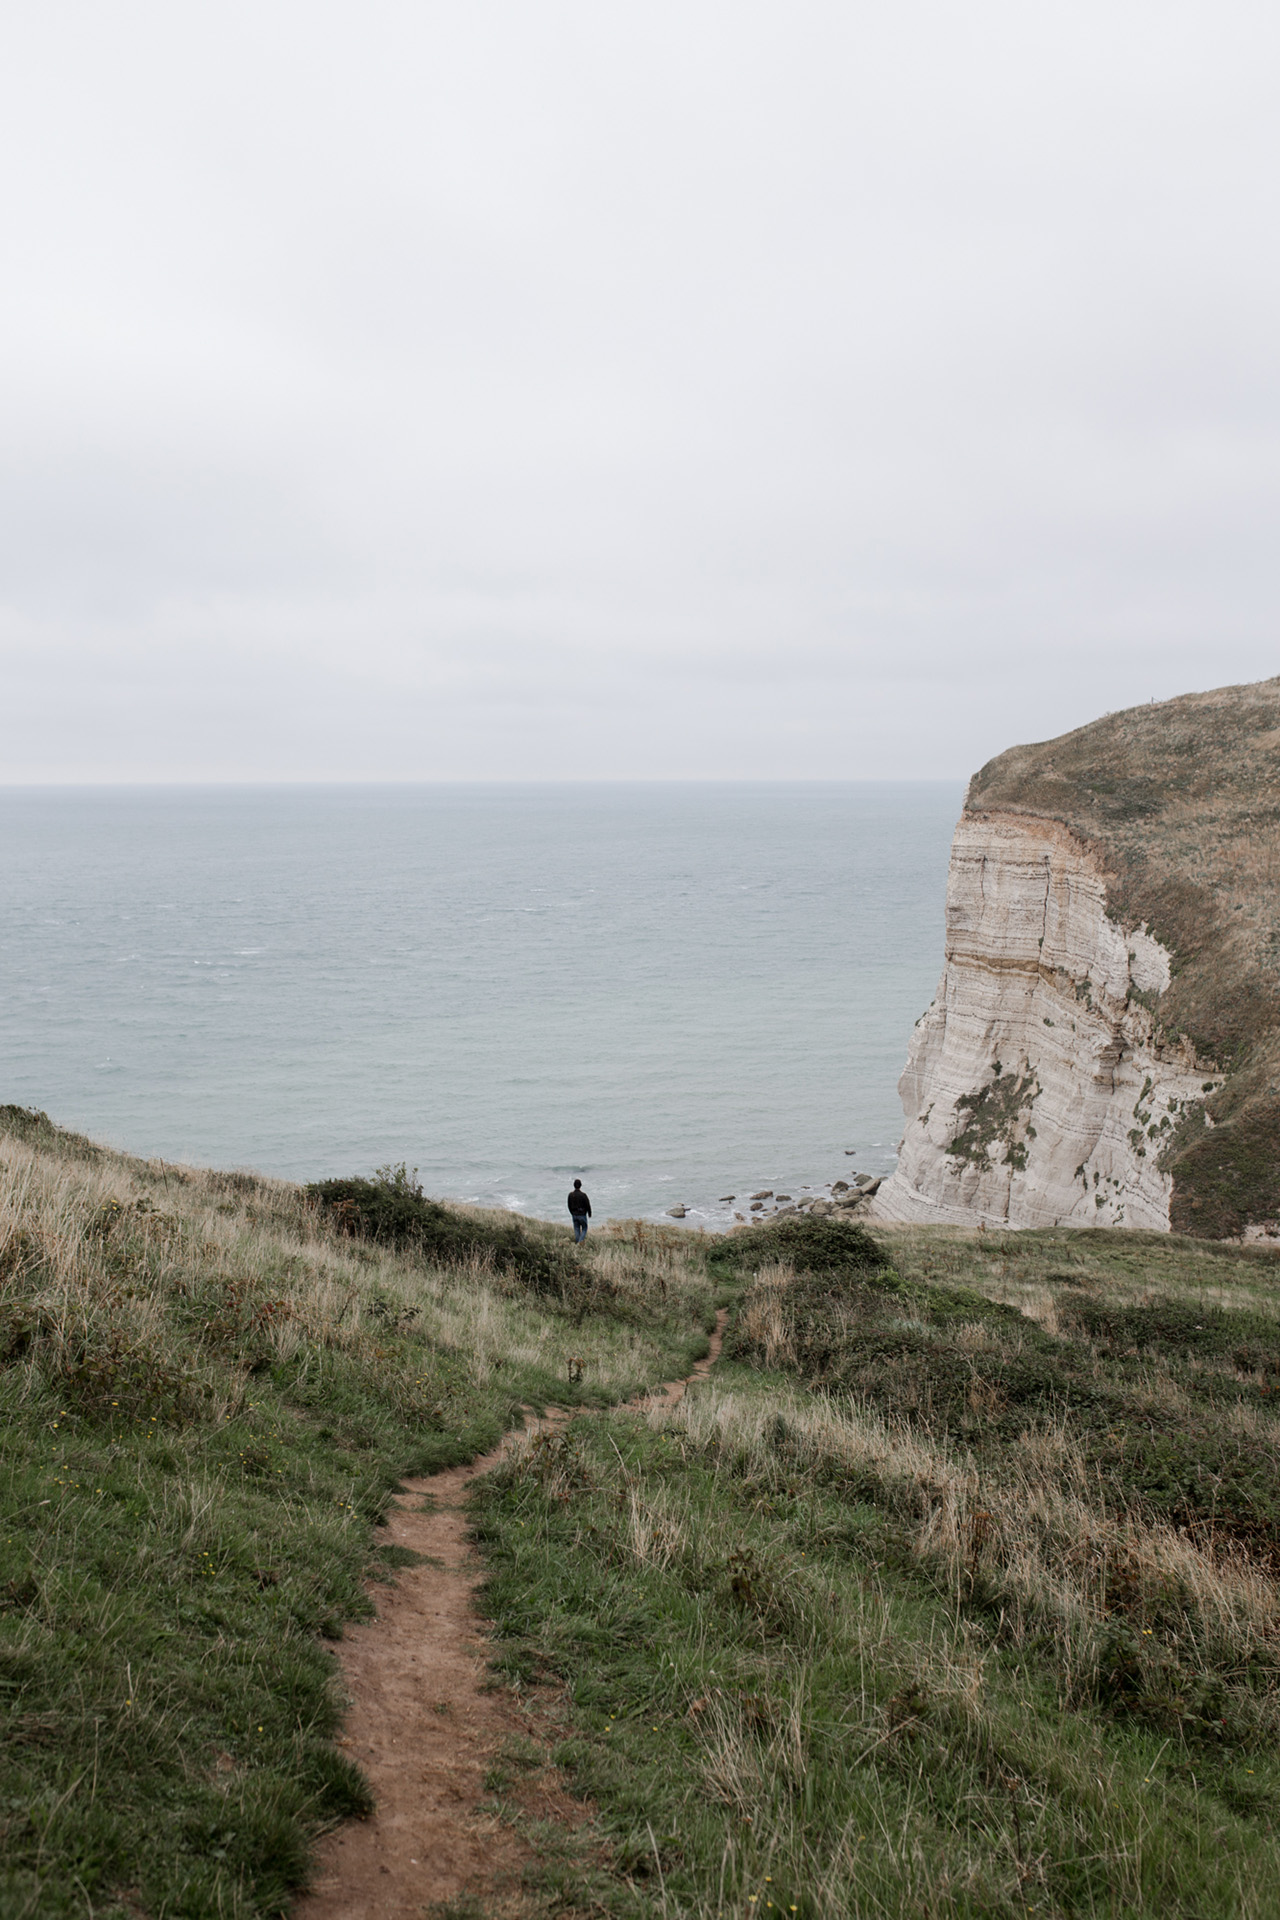 Along the cliff